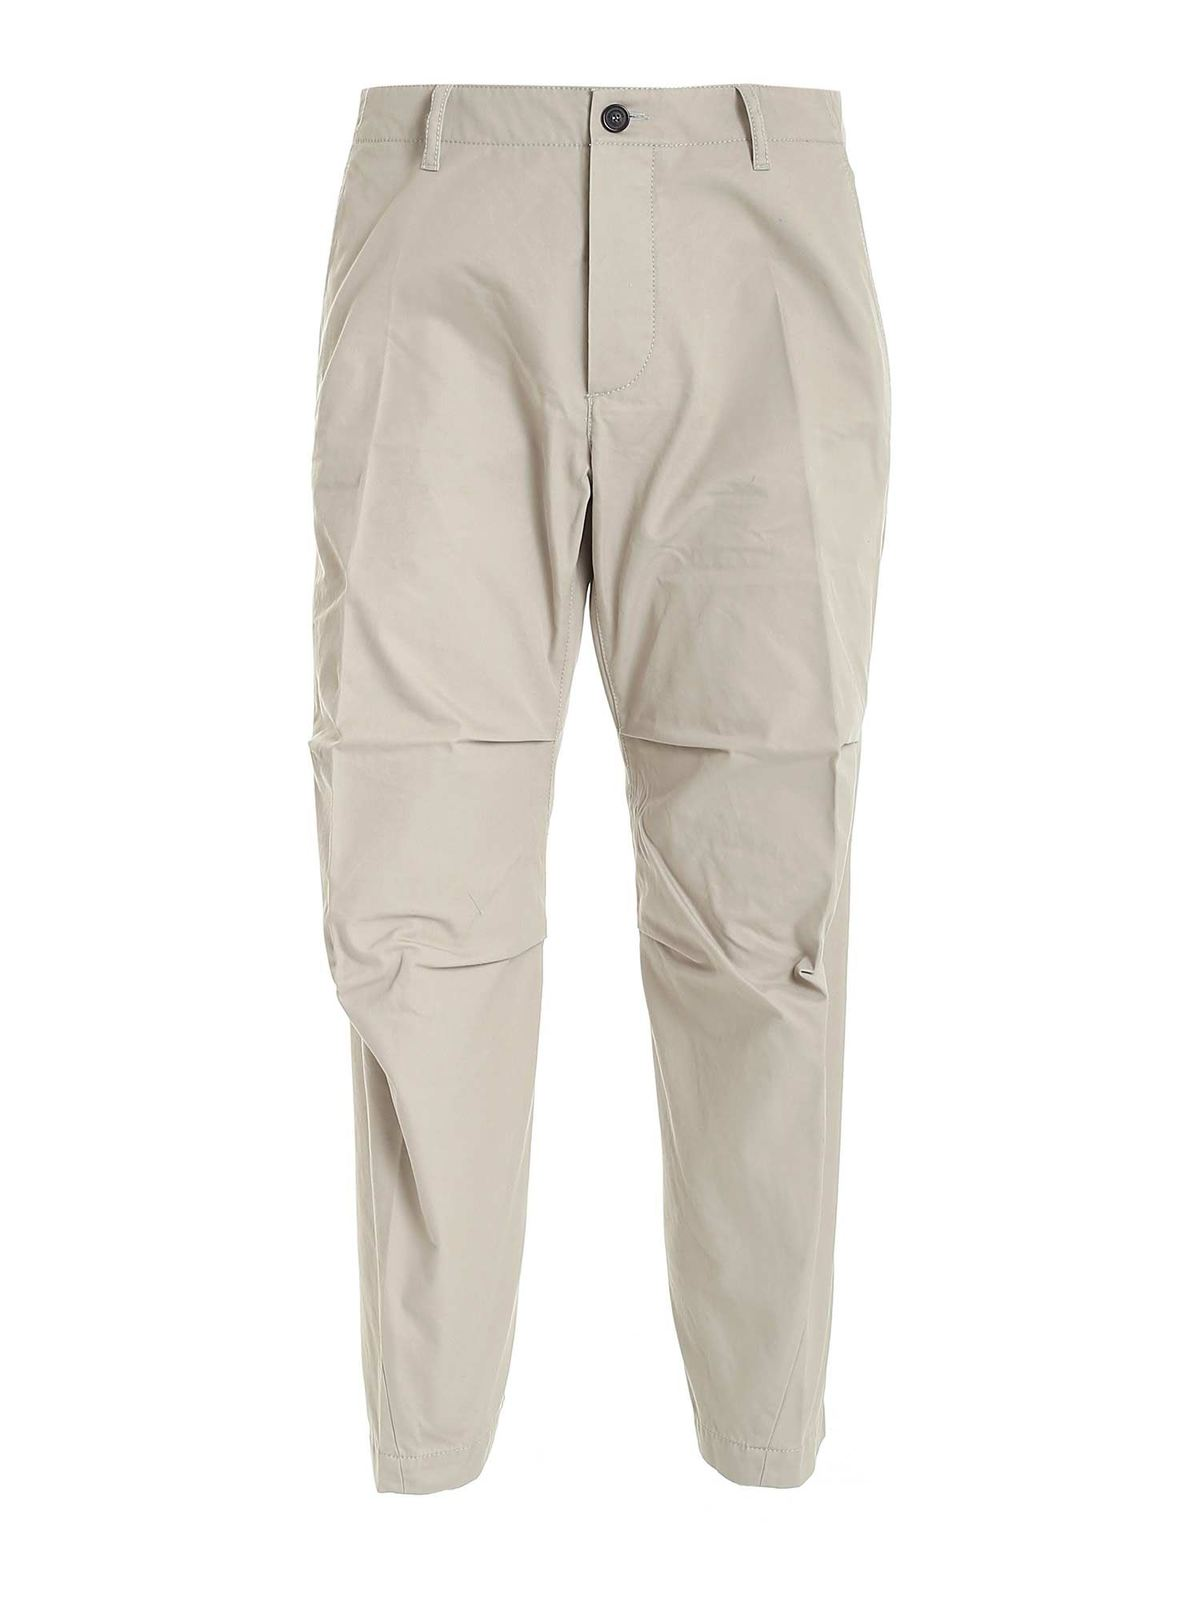 Dsquared2 Skipper Fit Chino Pants In Dove Grey Color In Beige